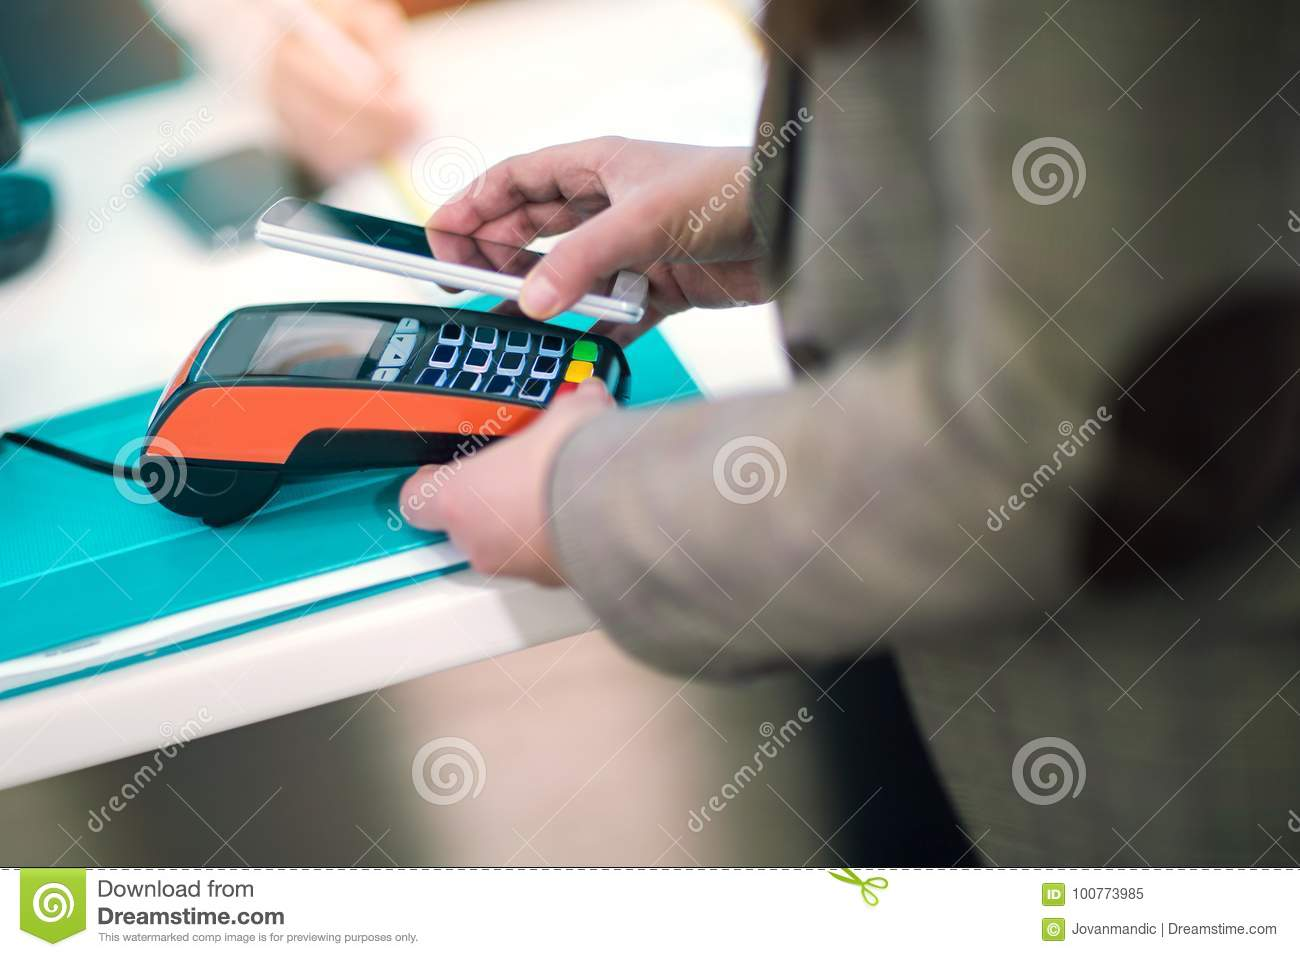 Man using mobile phone to pay